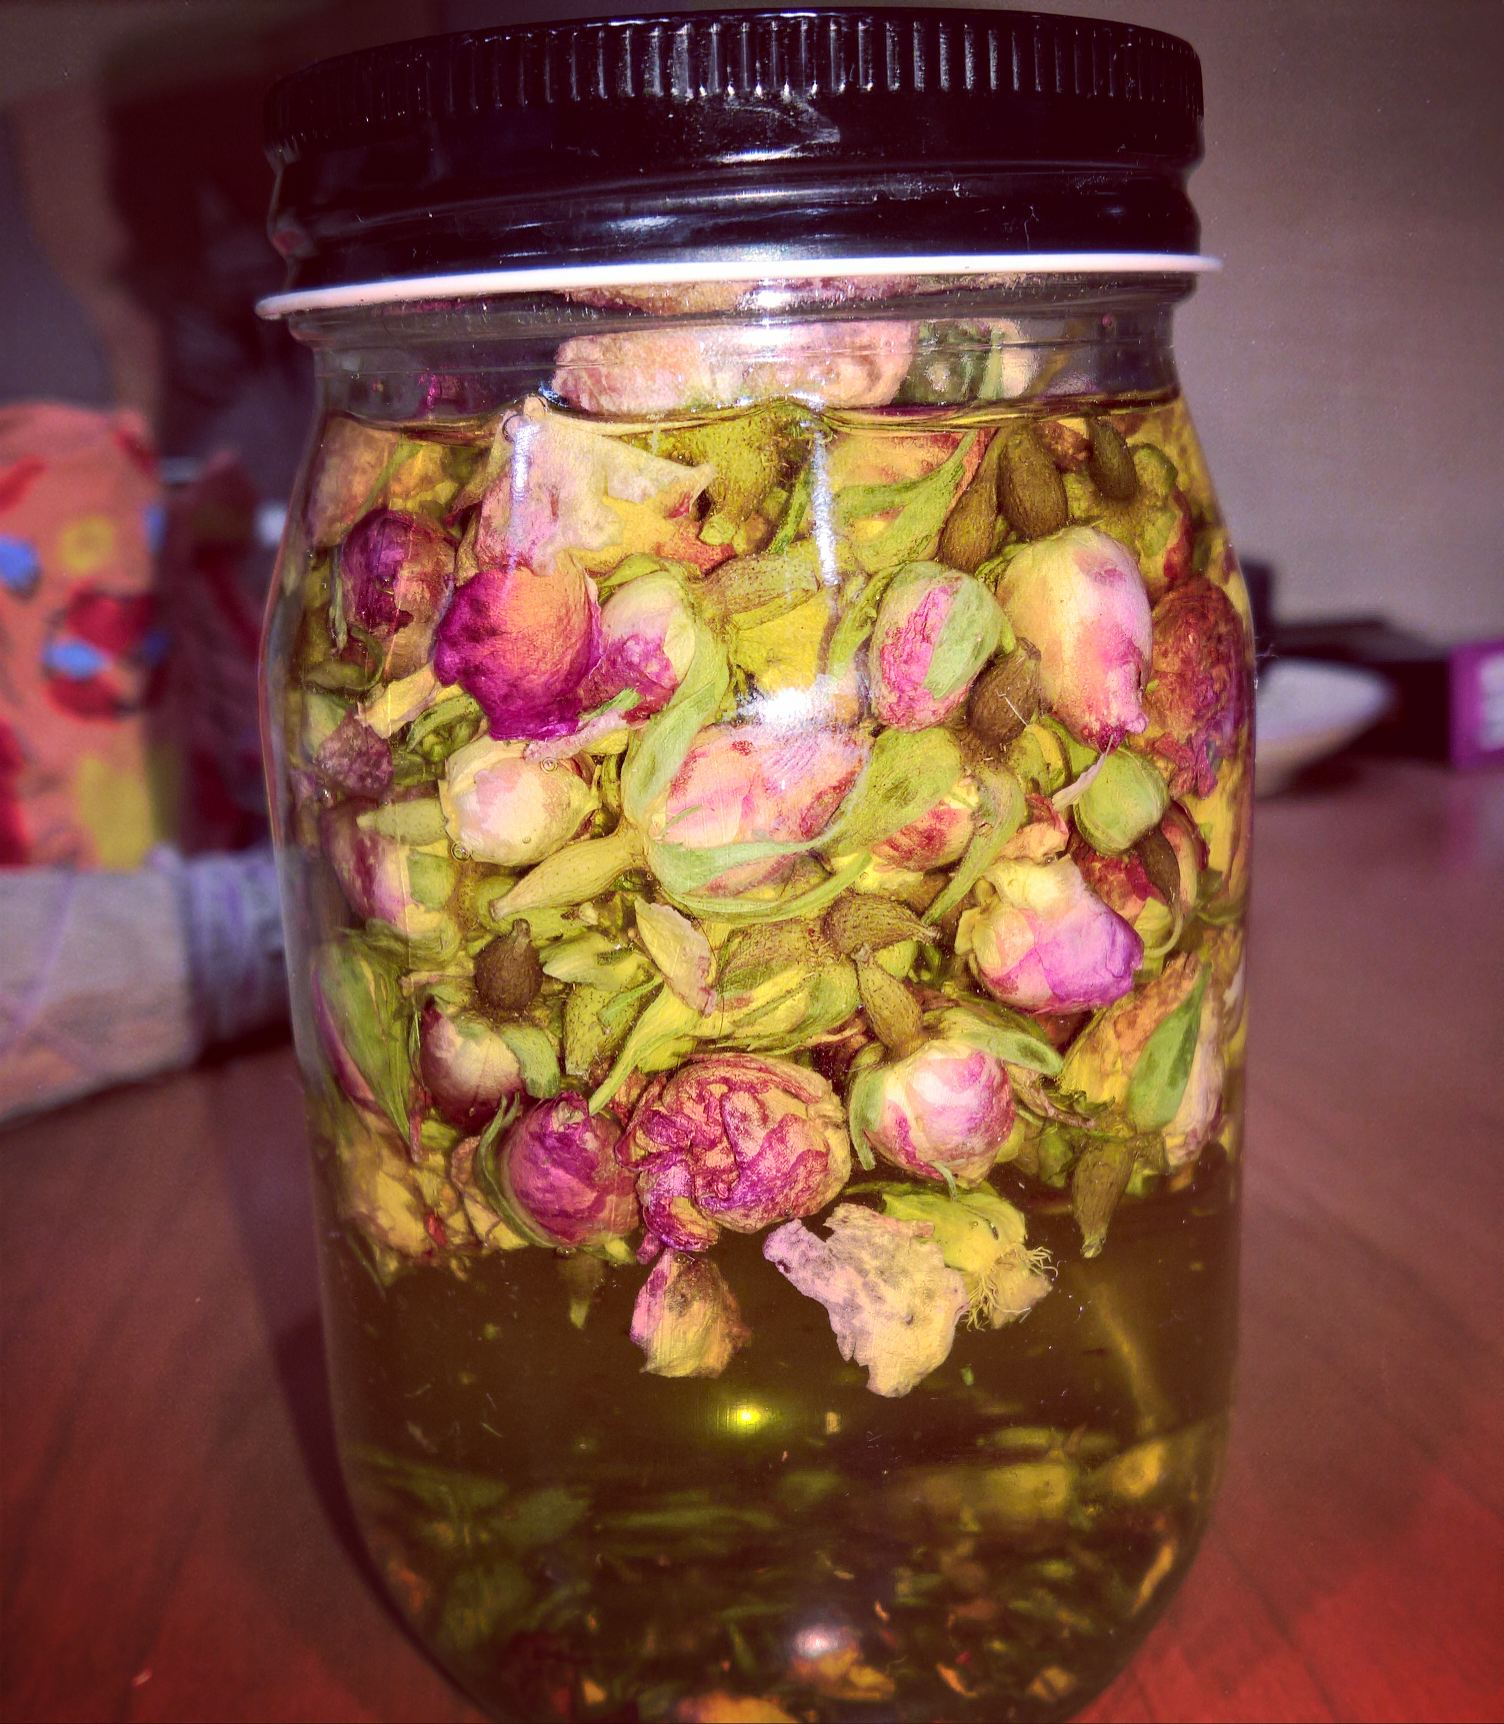 How to Make an Herbal Oil Part 1